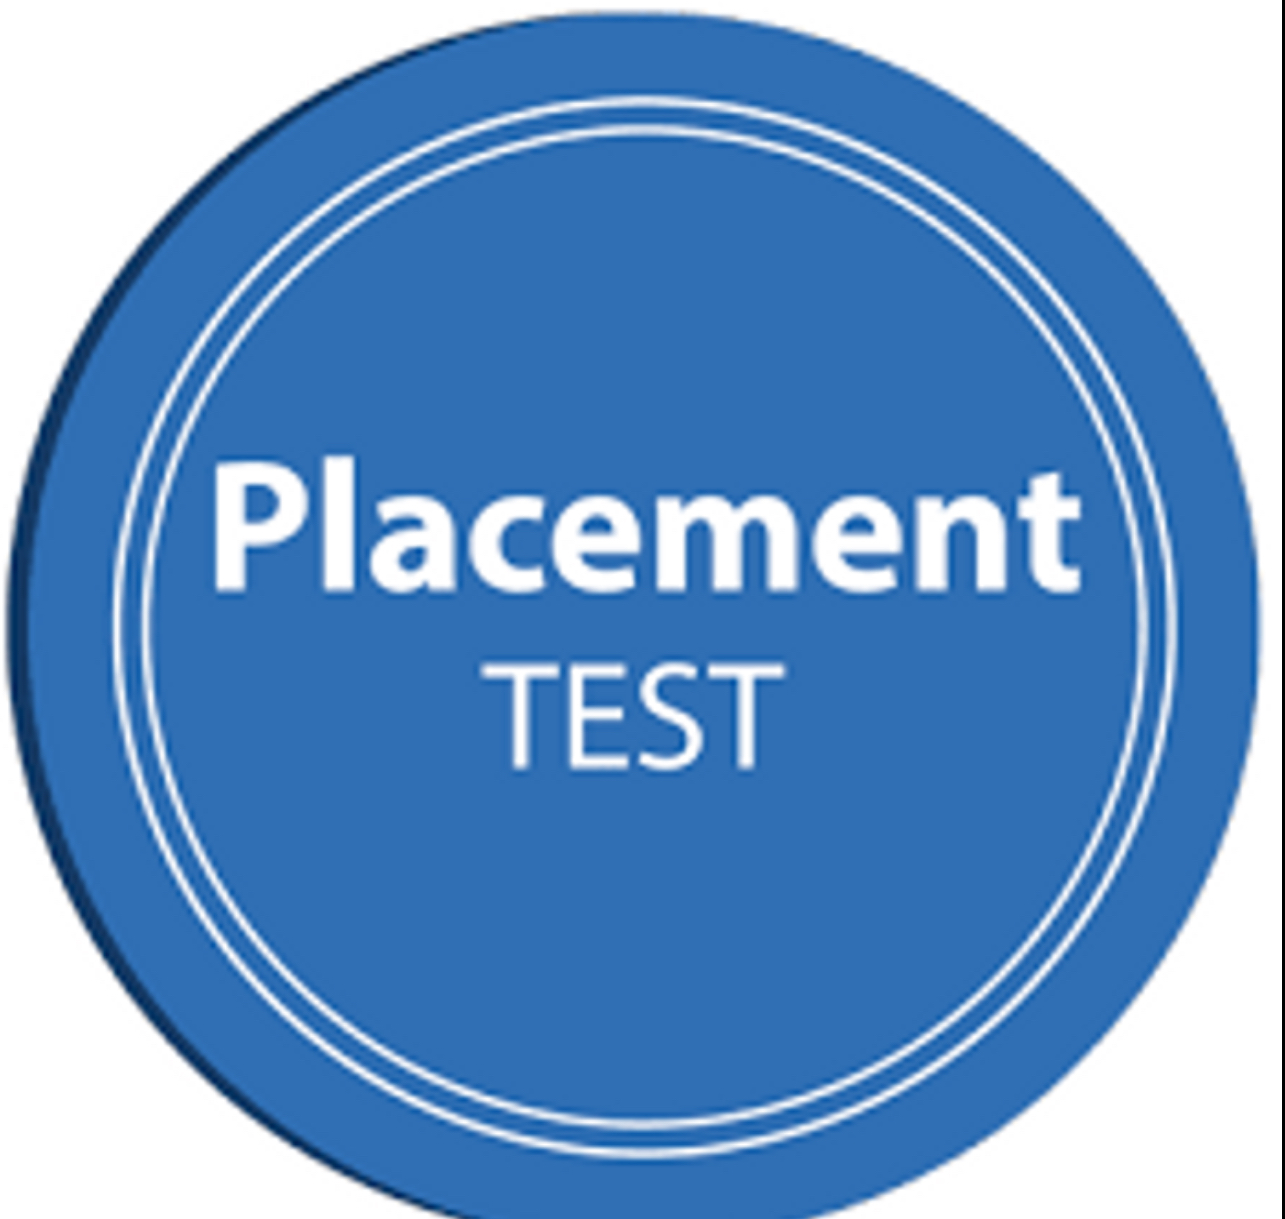 QUICK PLACEMENT TEST